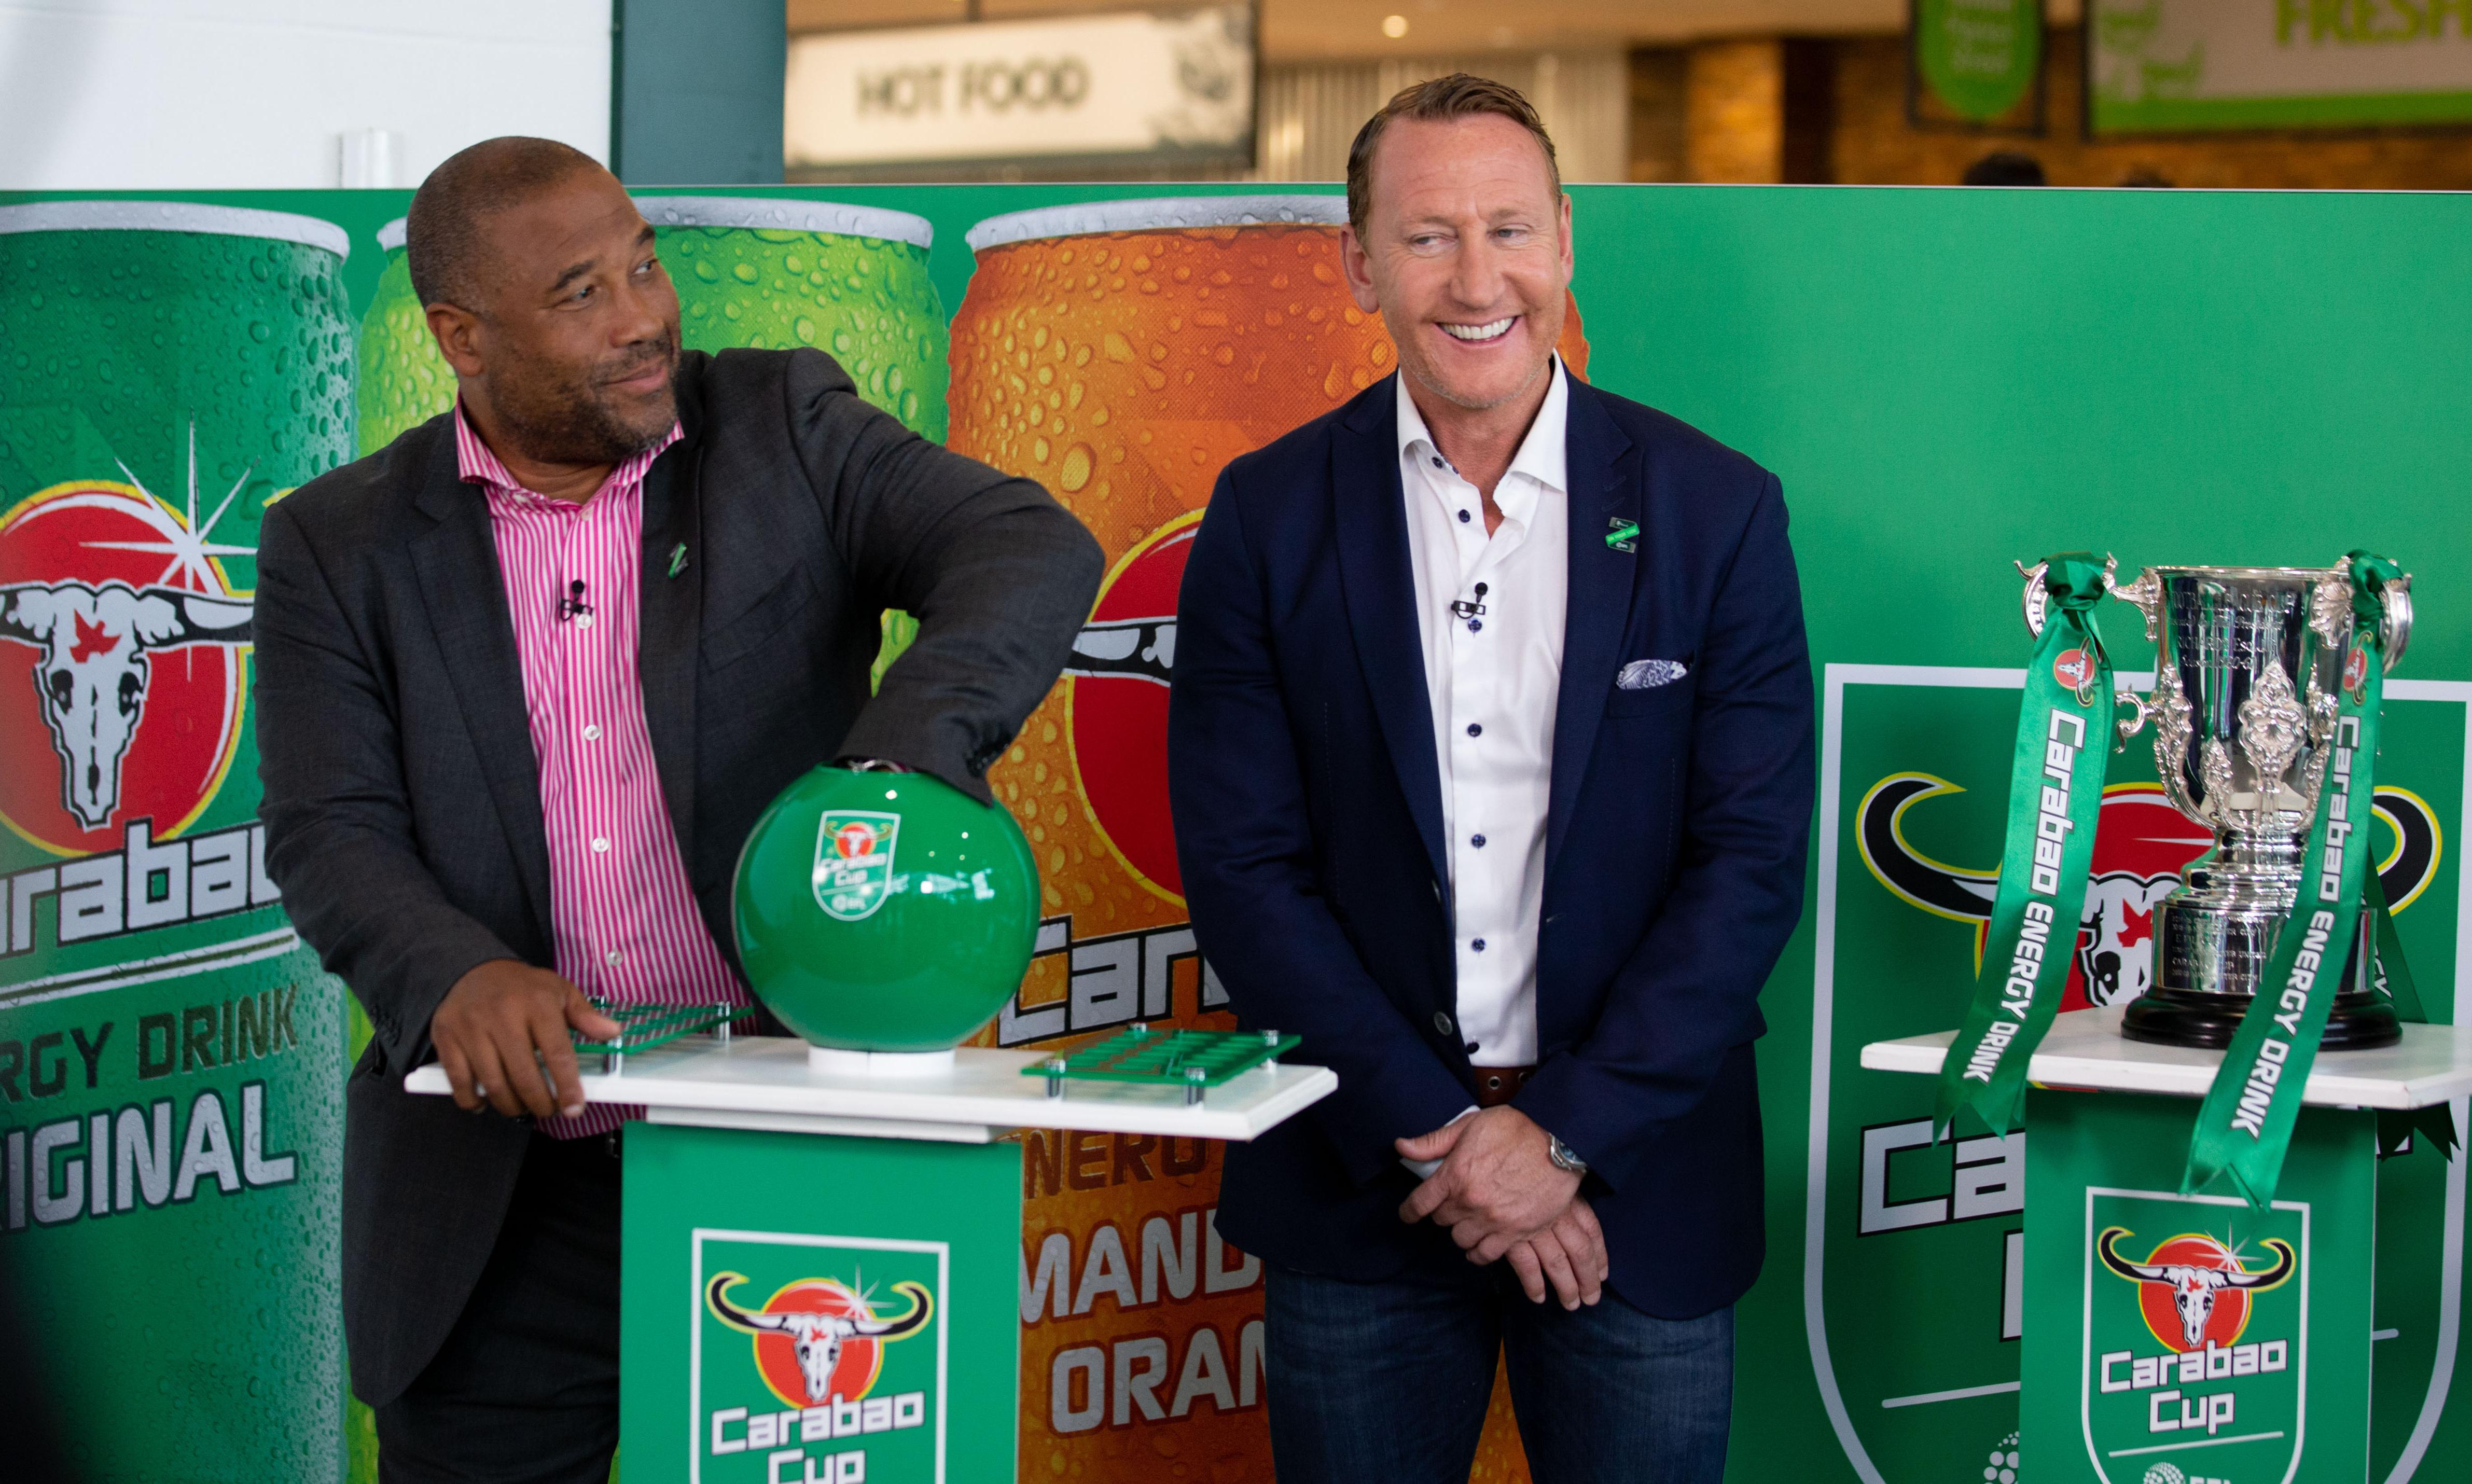 Carabao Cup draw proves to be an unexpected item in bagging area